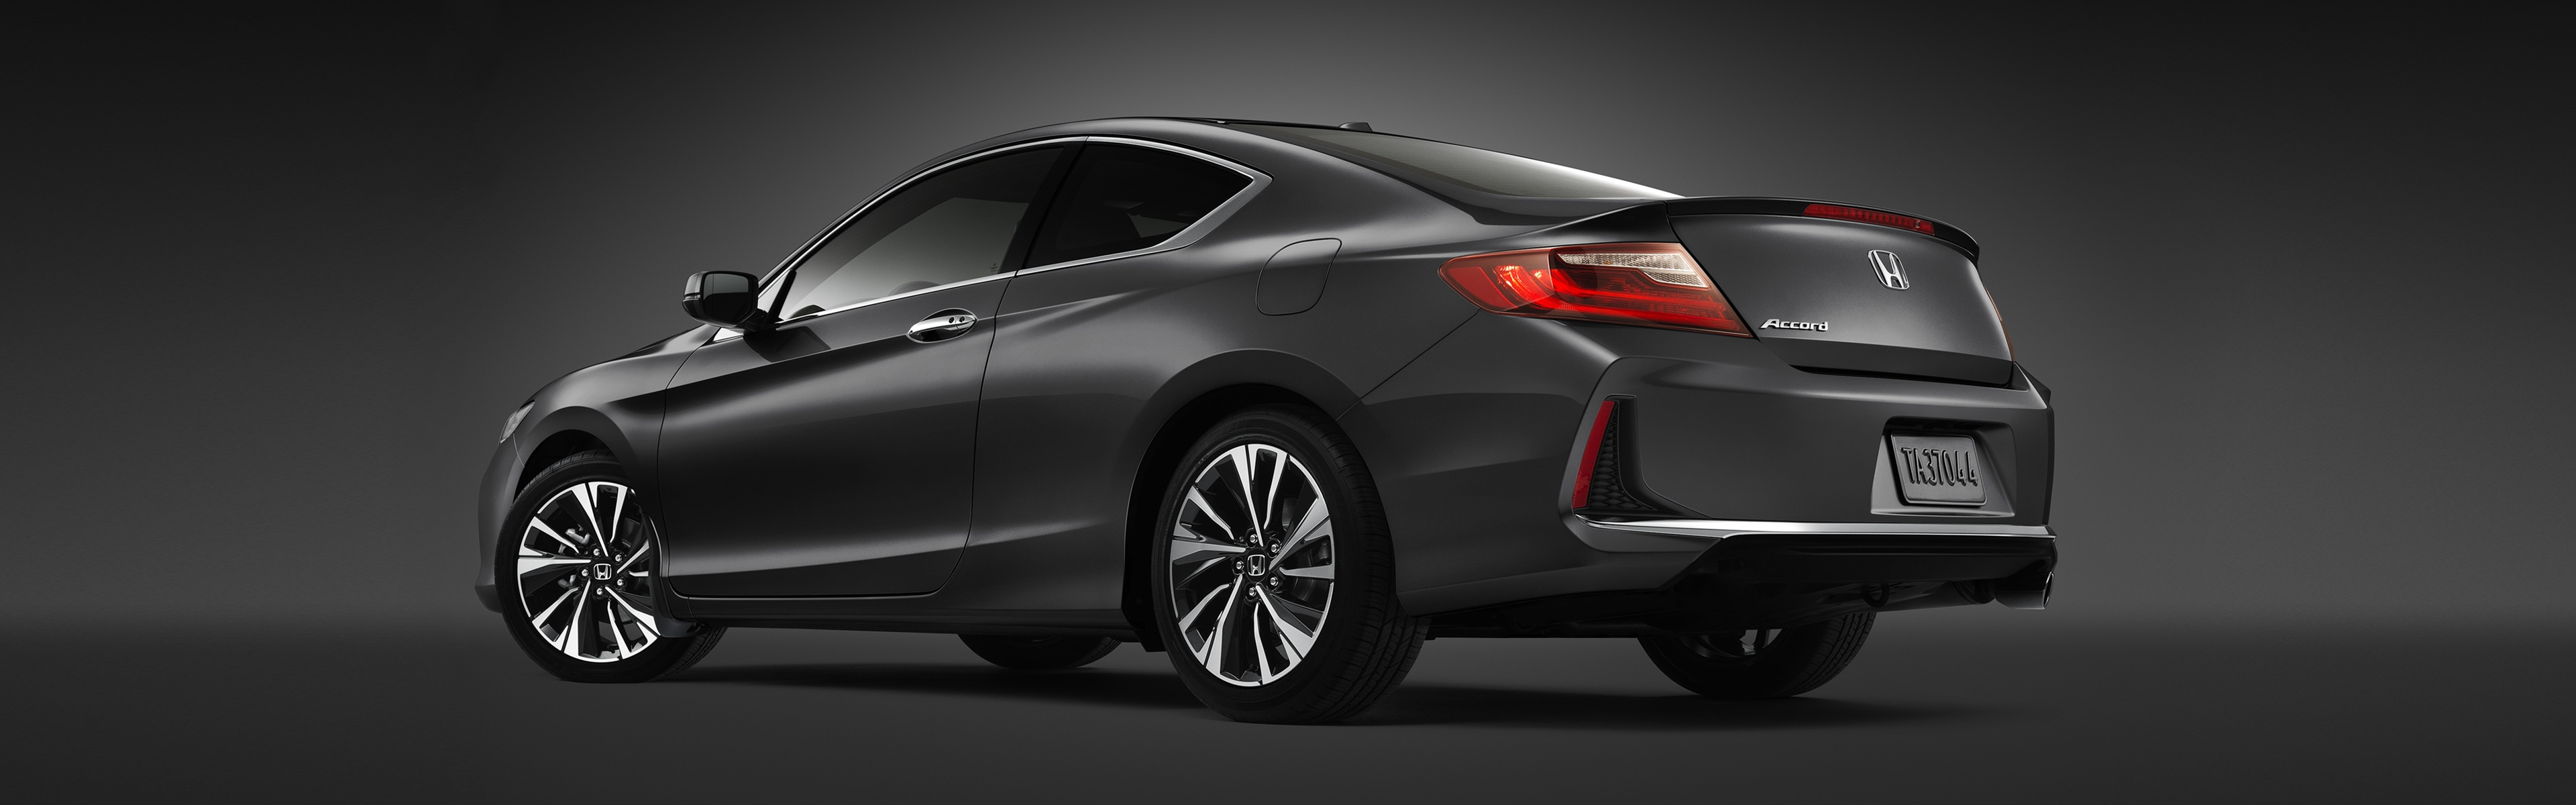 Image of the Accord Coupe.